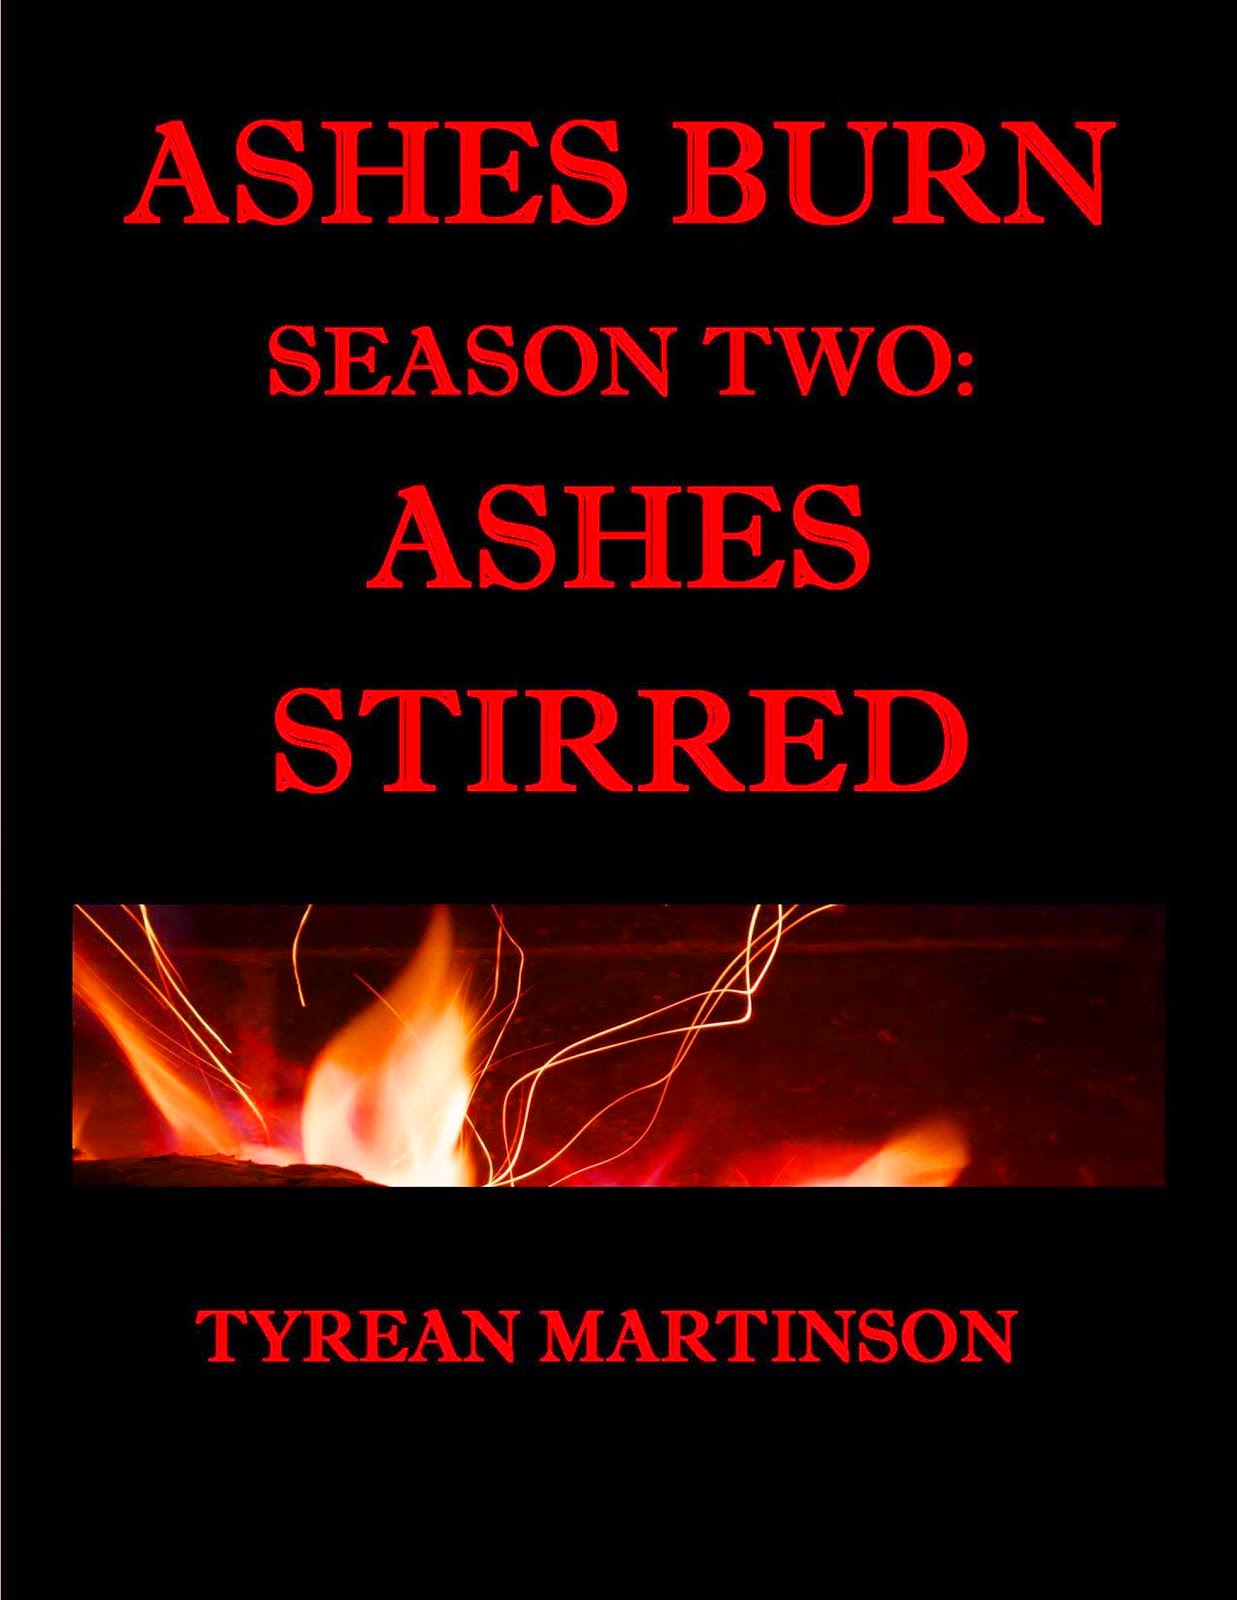 Ashes Burn Season 2: Ashes Stirred